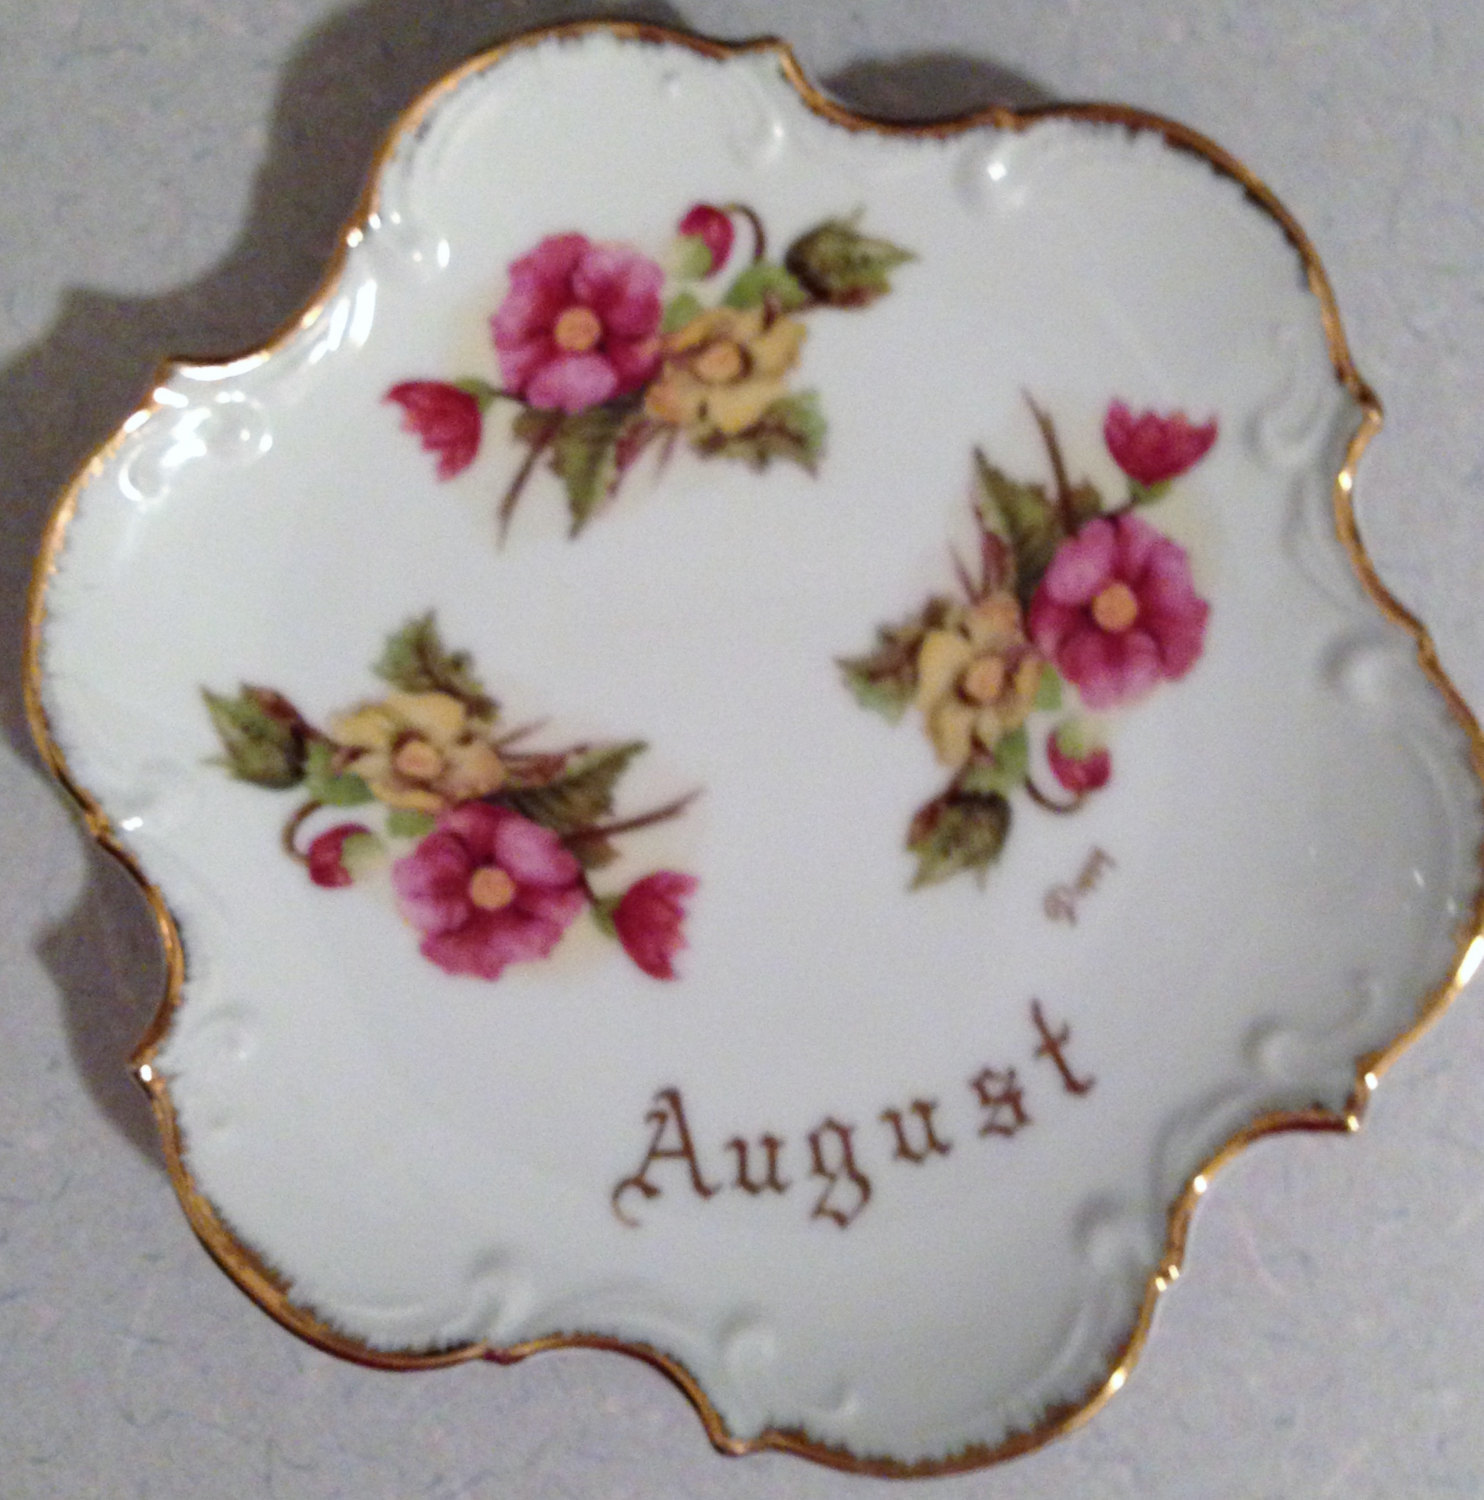 August Birth Month Plate Poppy Flowers Gold And 10 Similar Items